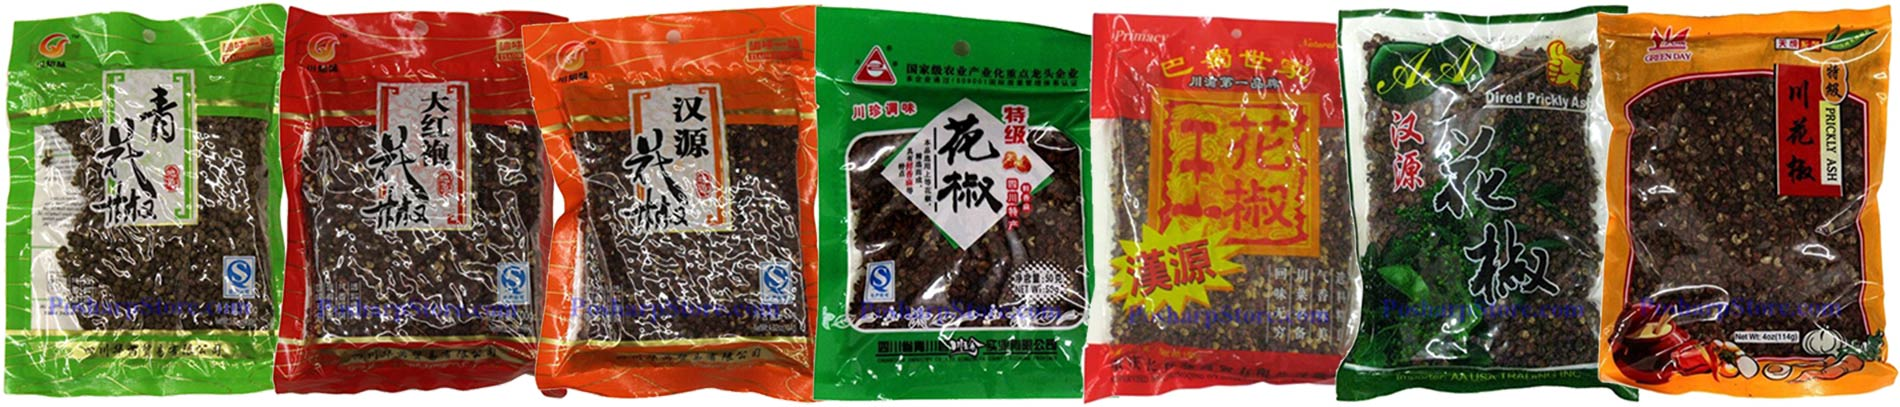 Sichuan Peppers in US Grocery Stores